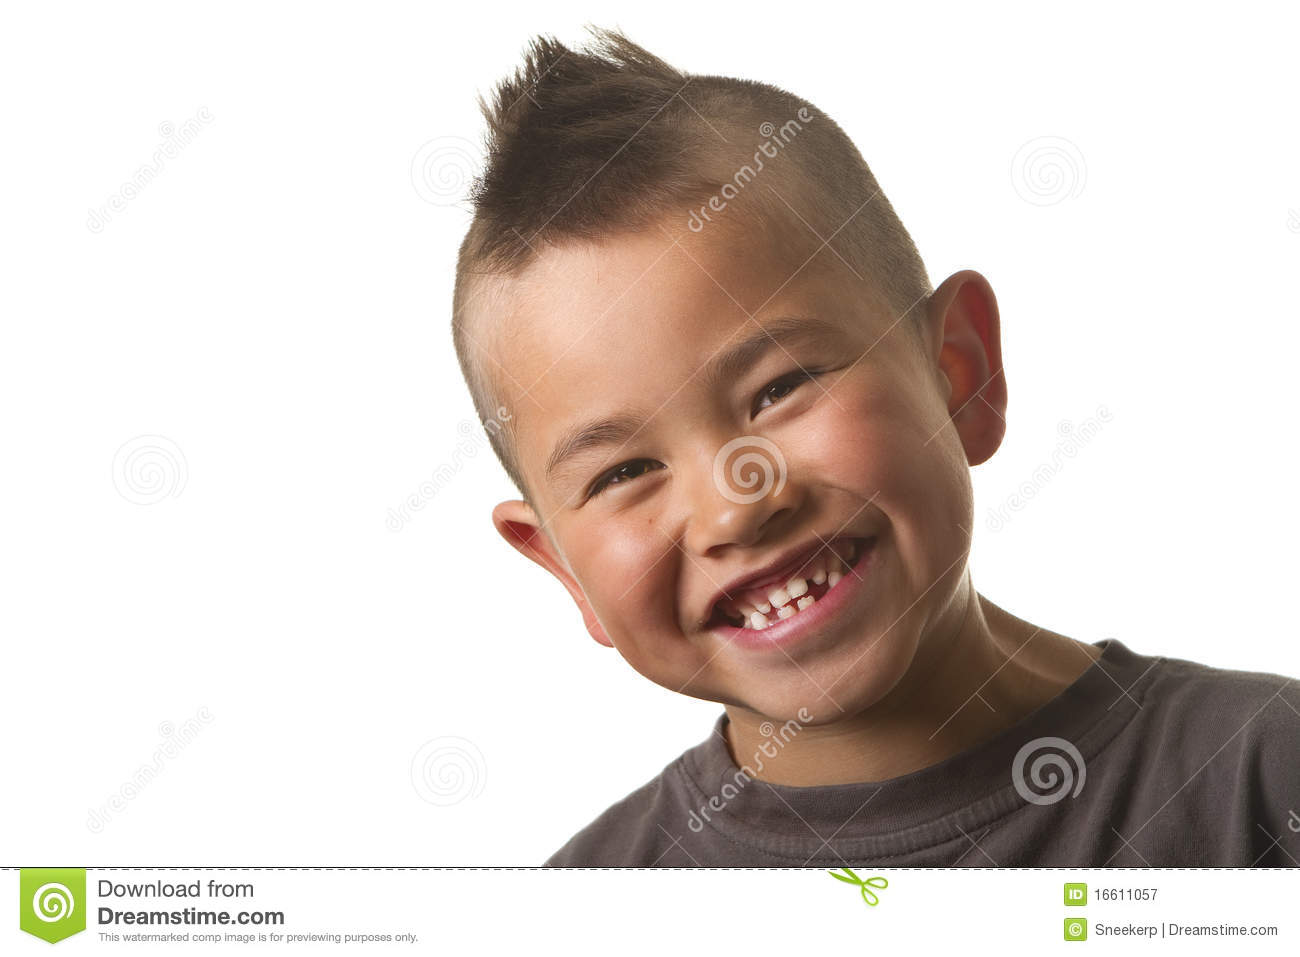 Cute Young Boy With Funny Mohawk Haircut Isolated Stock Image